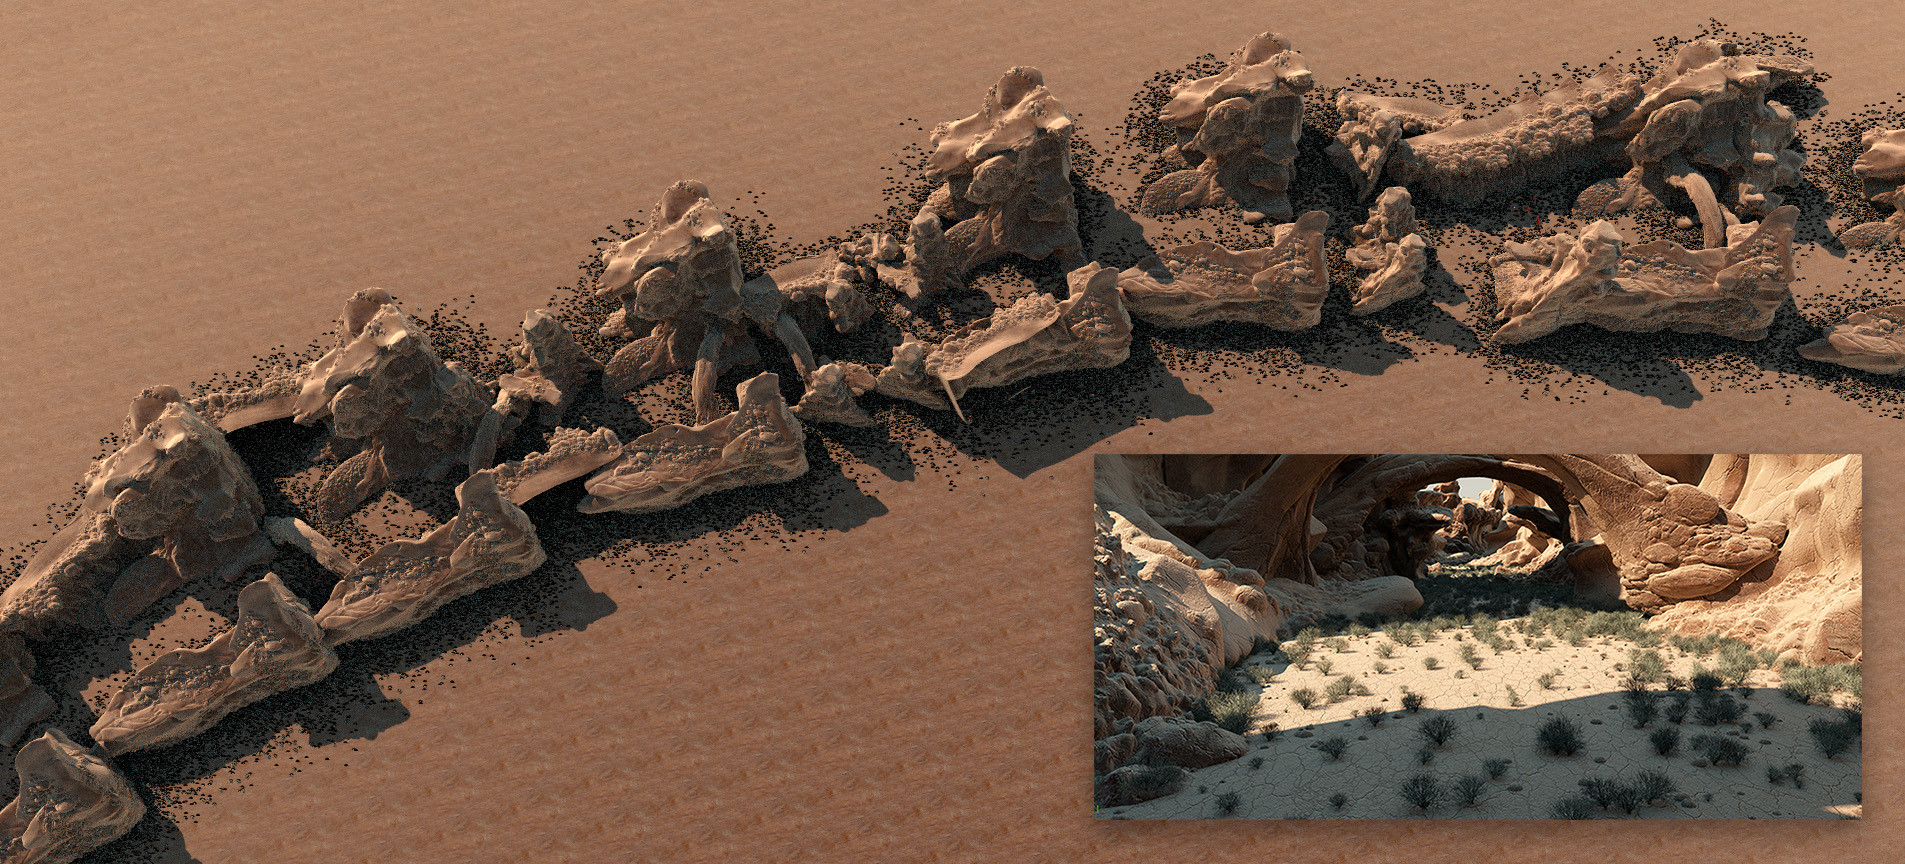 Top view of the canyon. Plants are scattered automatically using an occlusion based particle system.